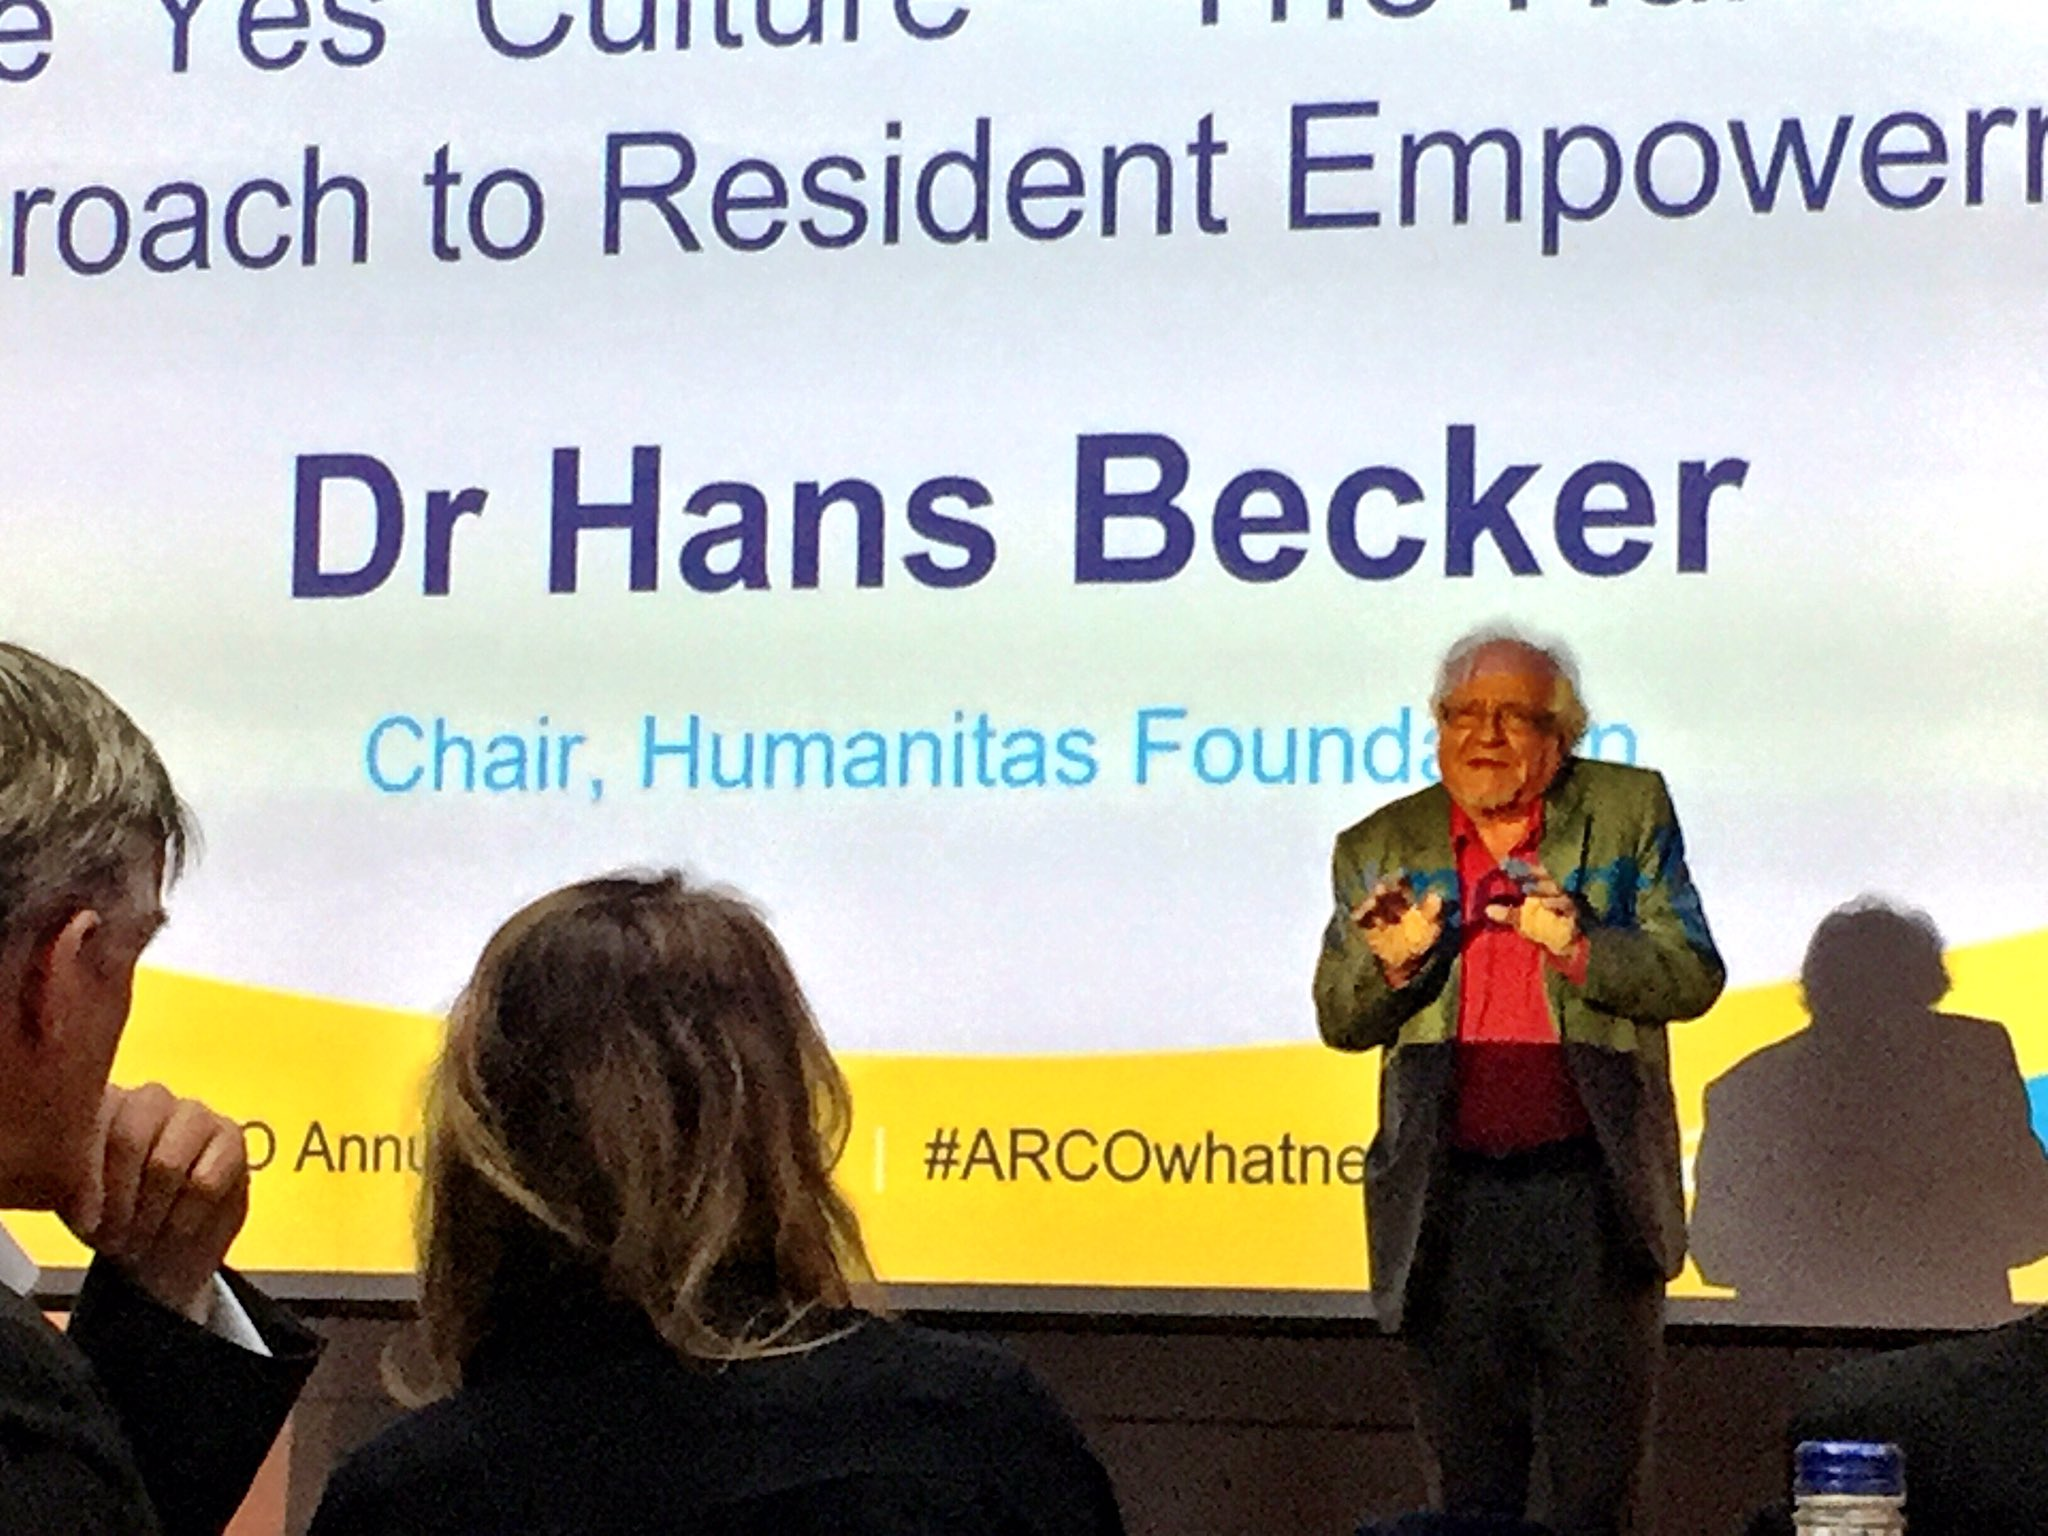 The eminent Dr Hans Becker - the ' Yes' culture for Older People  #arco17 https://t.co/osa08UHWRb